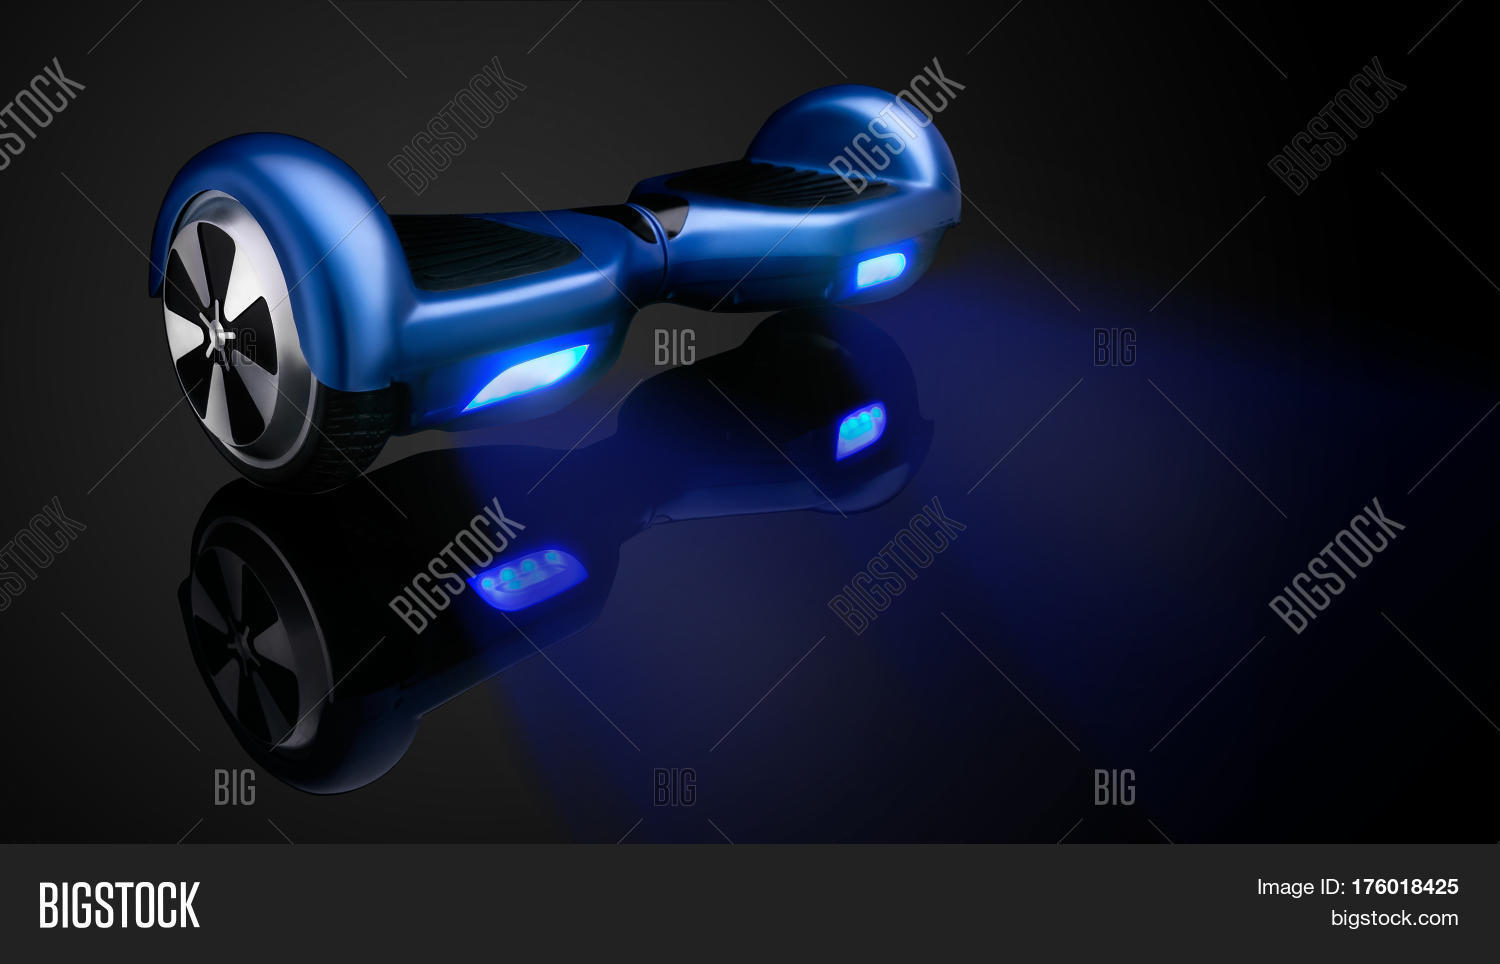 background,balance,battery,black,board,colorful,eco,electrical,electronic,fixing,gadget,giroscooter,giroskuter,gyroboard,gyroscooter,gyroscope,hover,hoverboard,hyroscooter,innovative,mini,model,motion,move,movement,platform,product,scooter,segway,skateboard,smart,speed,technical,technological,technology,transport,unicycle